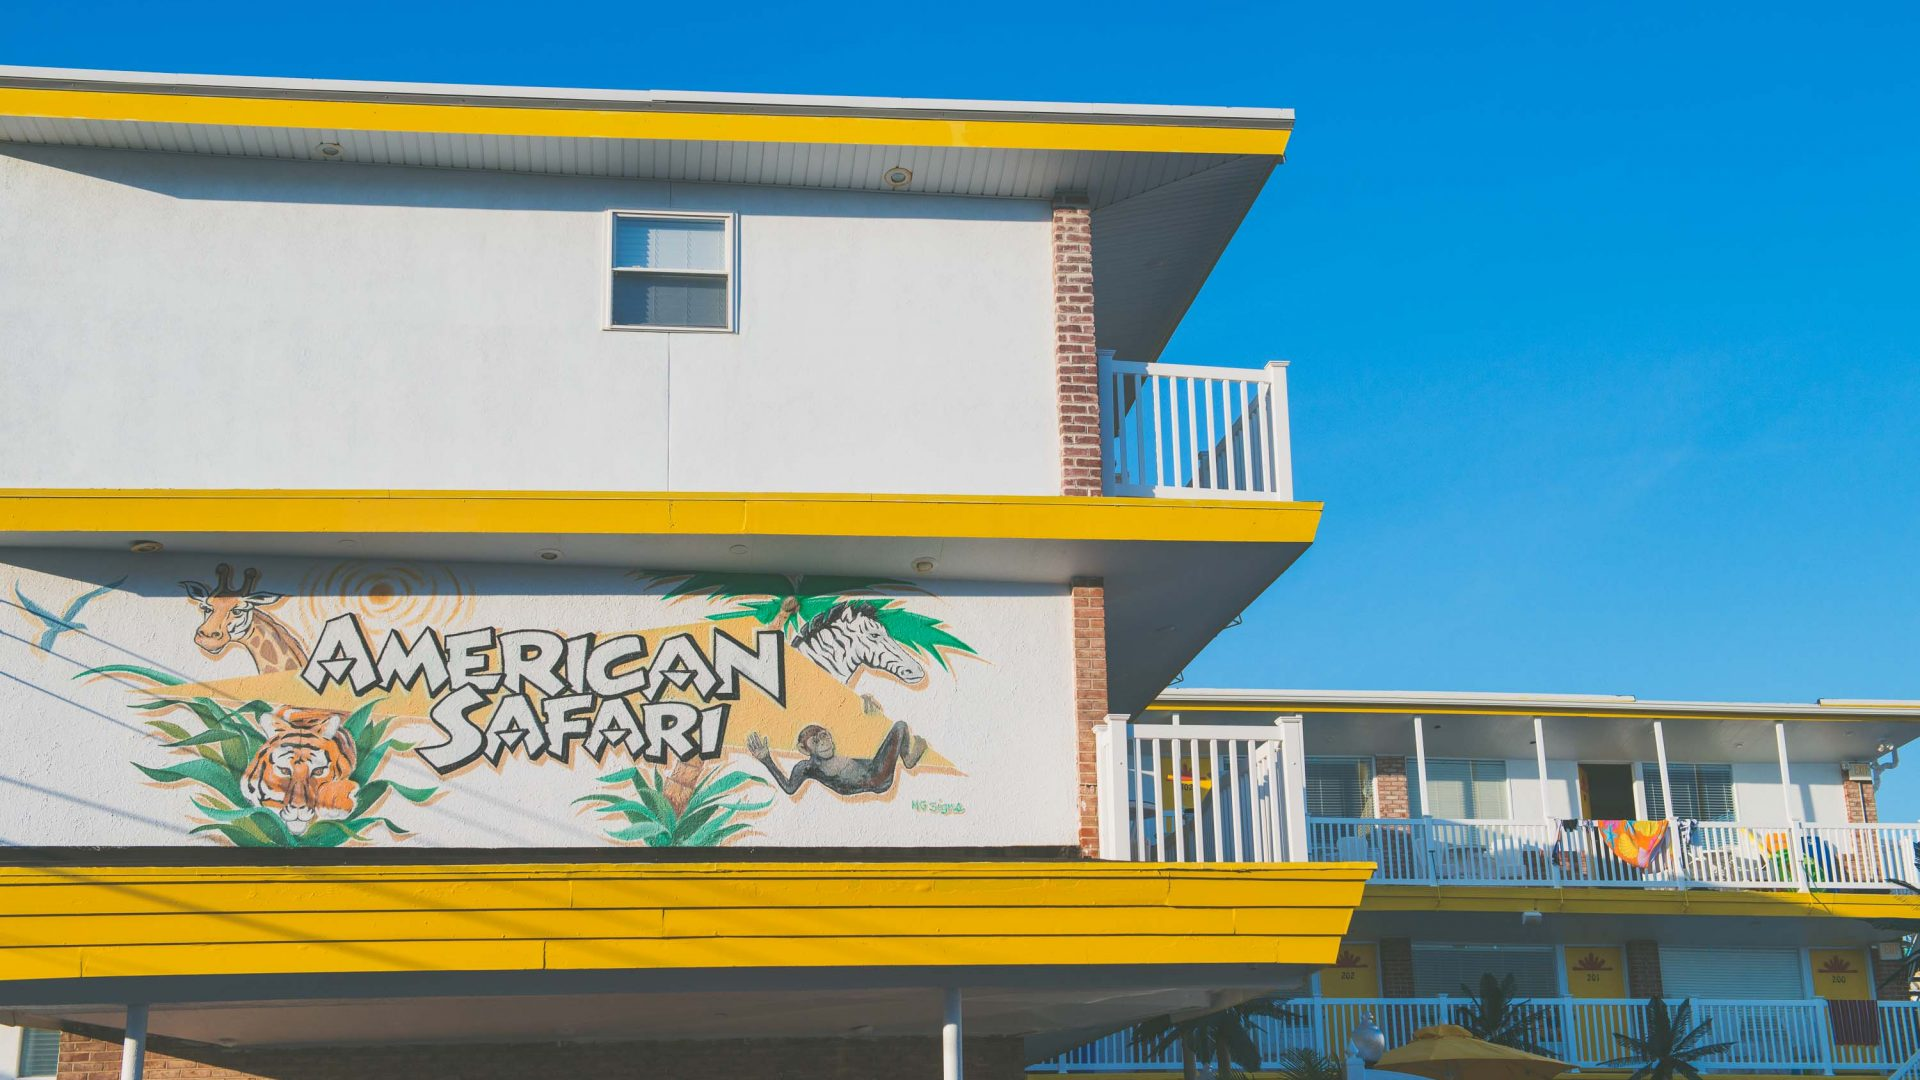 American Safari, one of the motels in Wildwood, New Jersey.